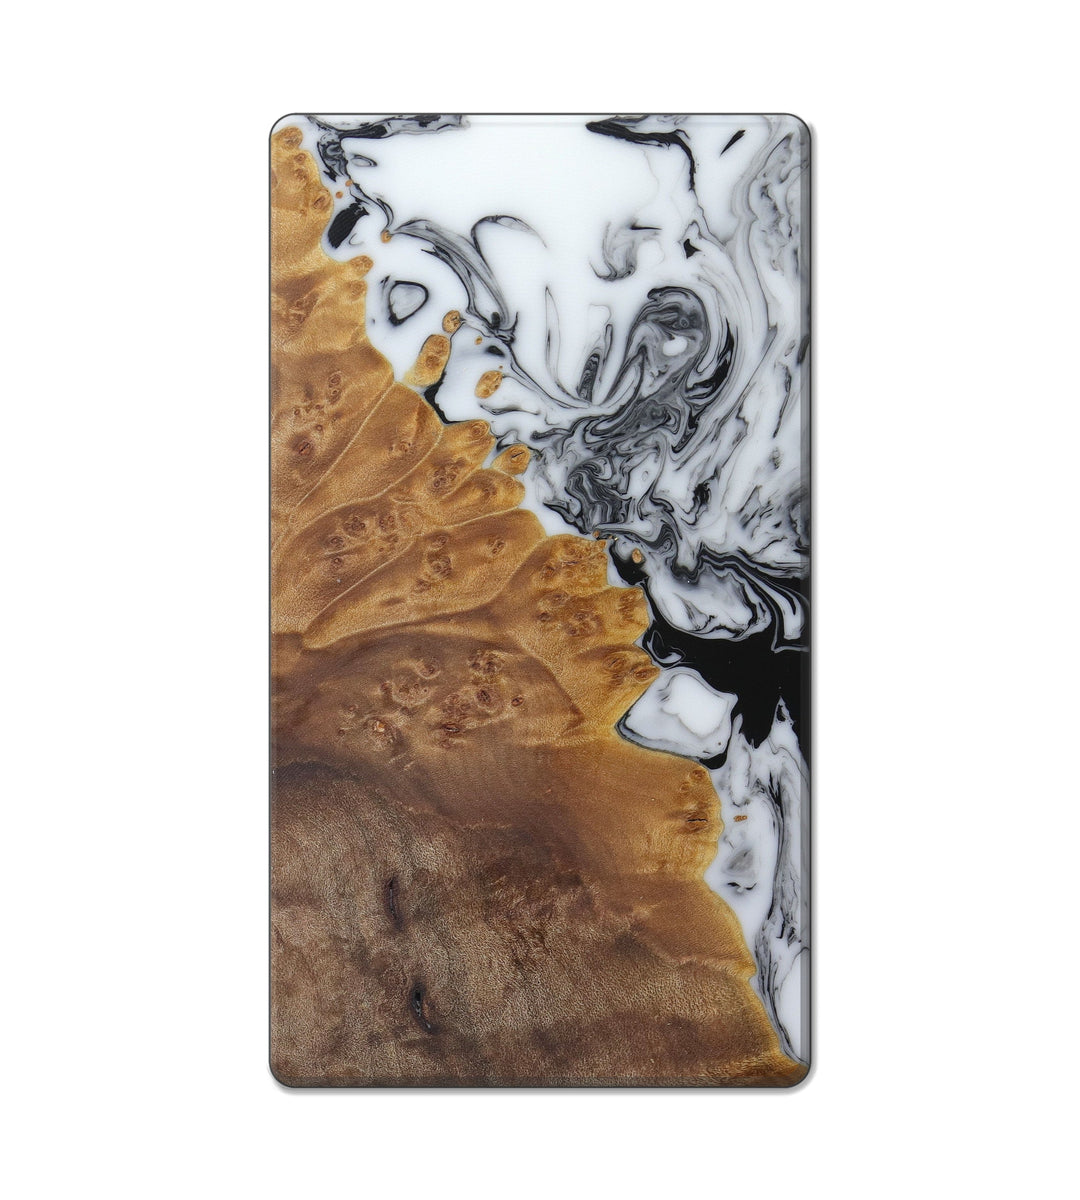 Custom Block Wood+Resin Live Edge - Habeeb (Black & White, 404775)